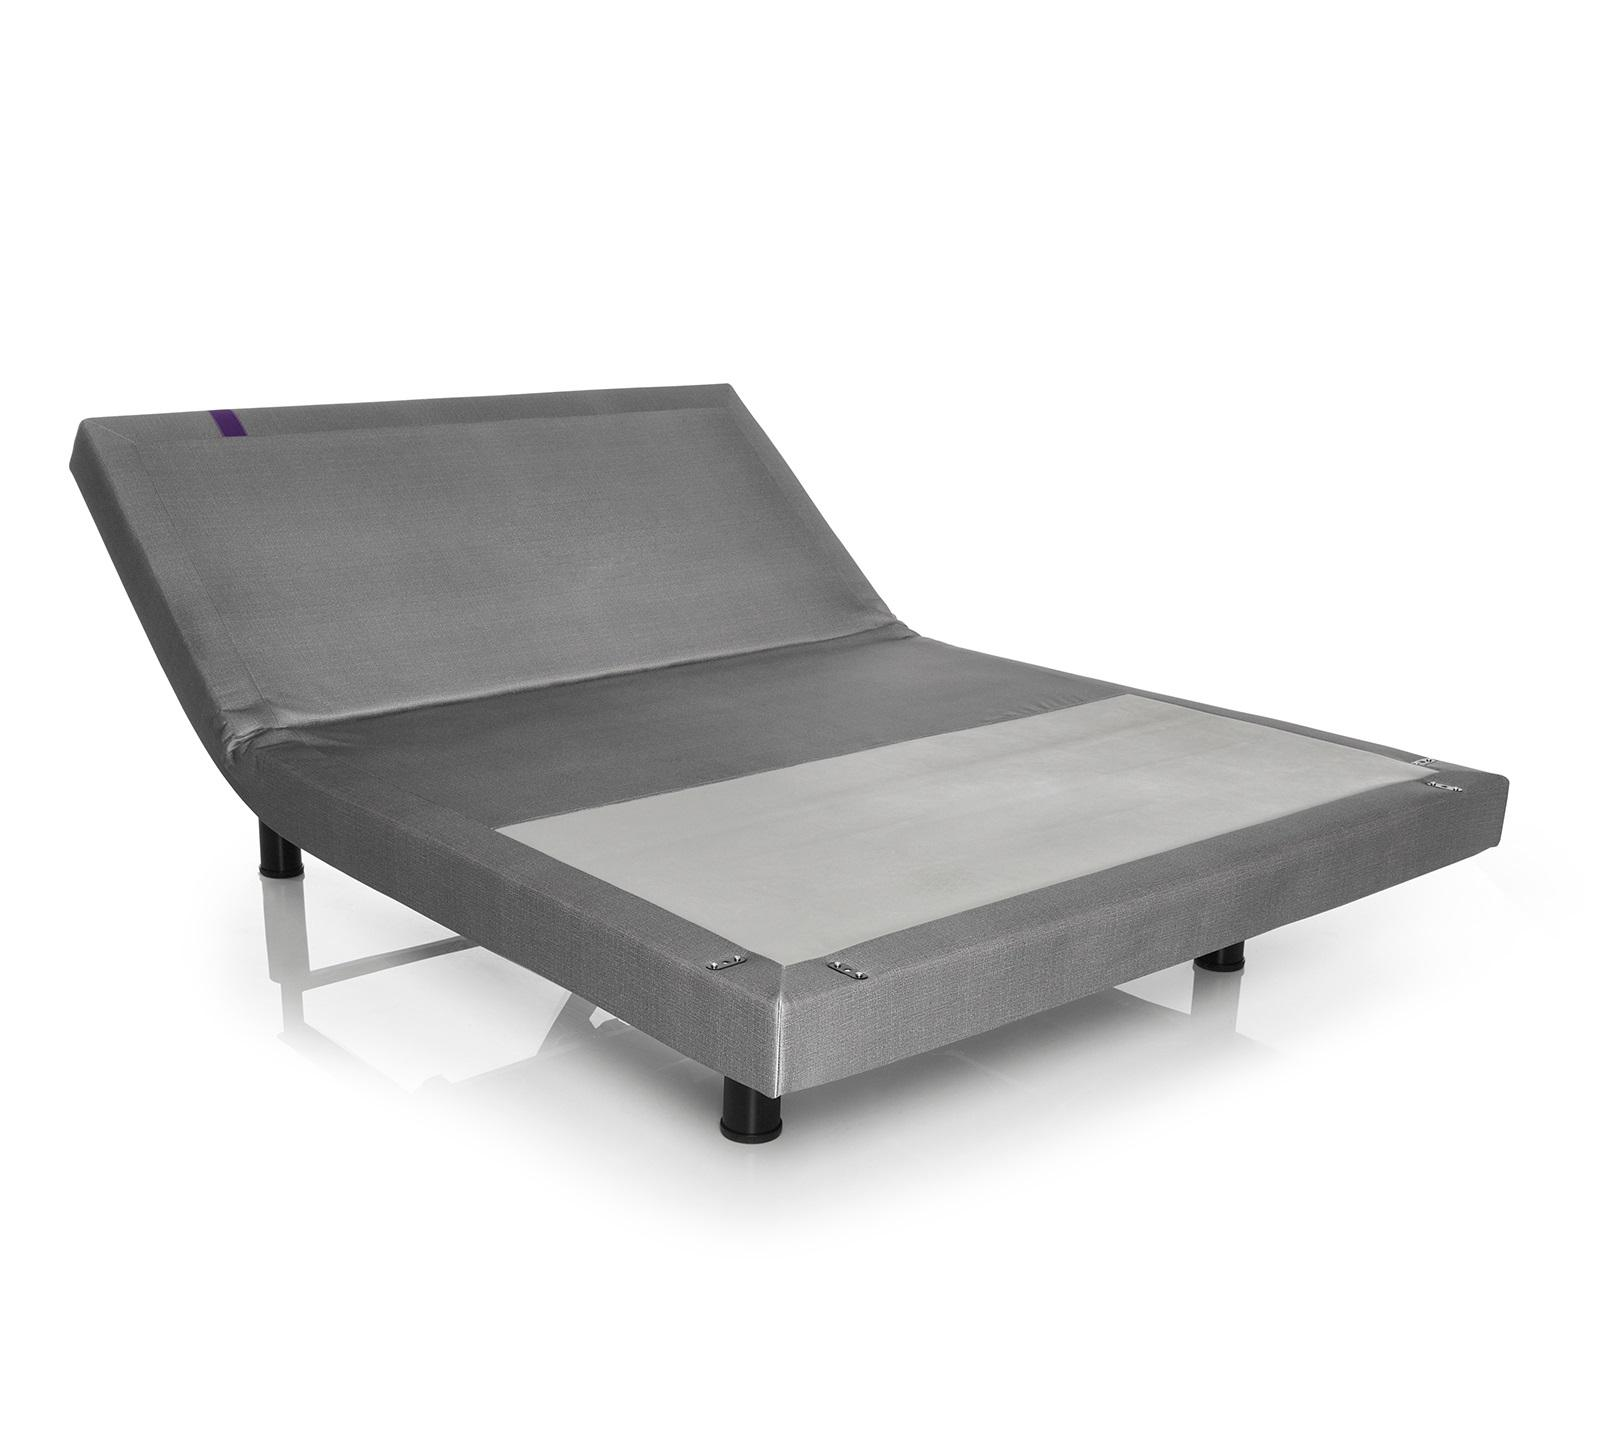 Mattress Firm Cincinnati Adjustable Base